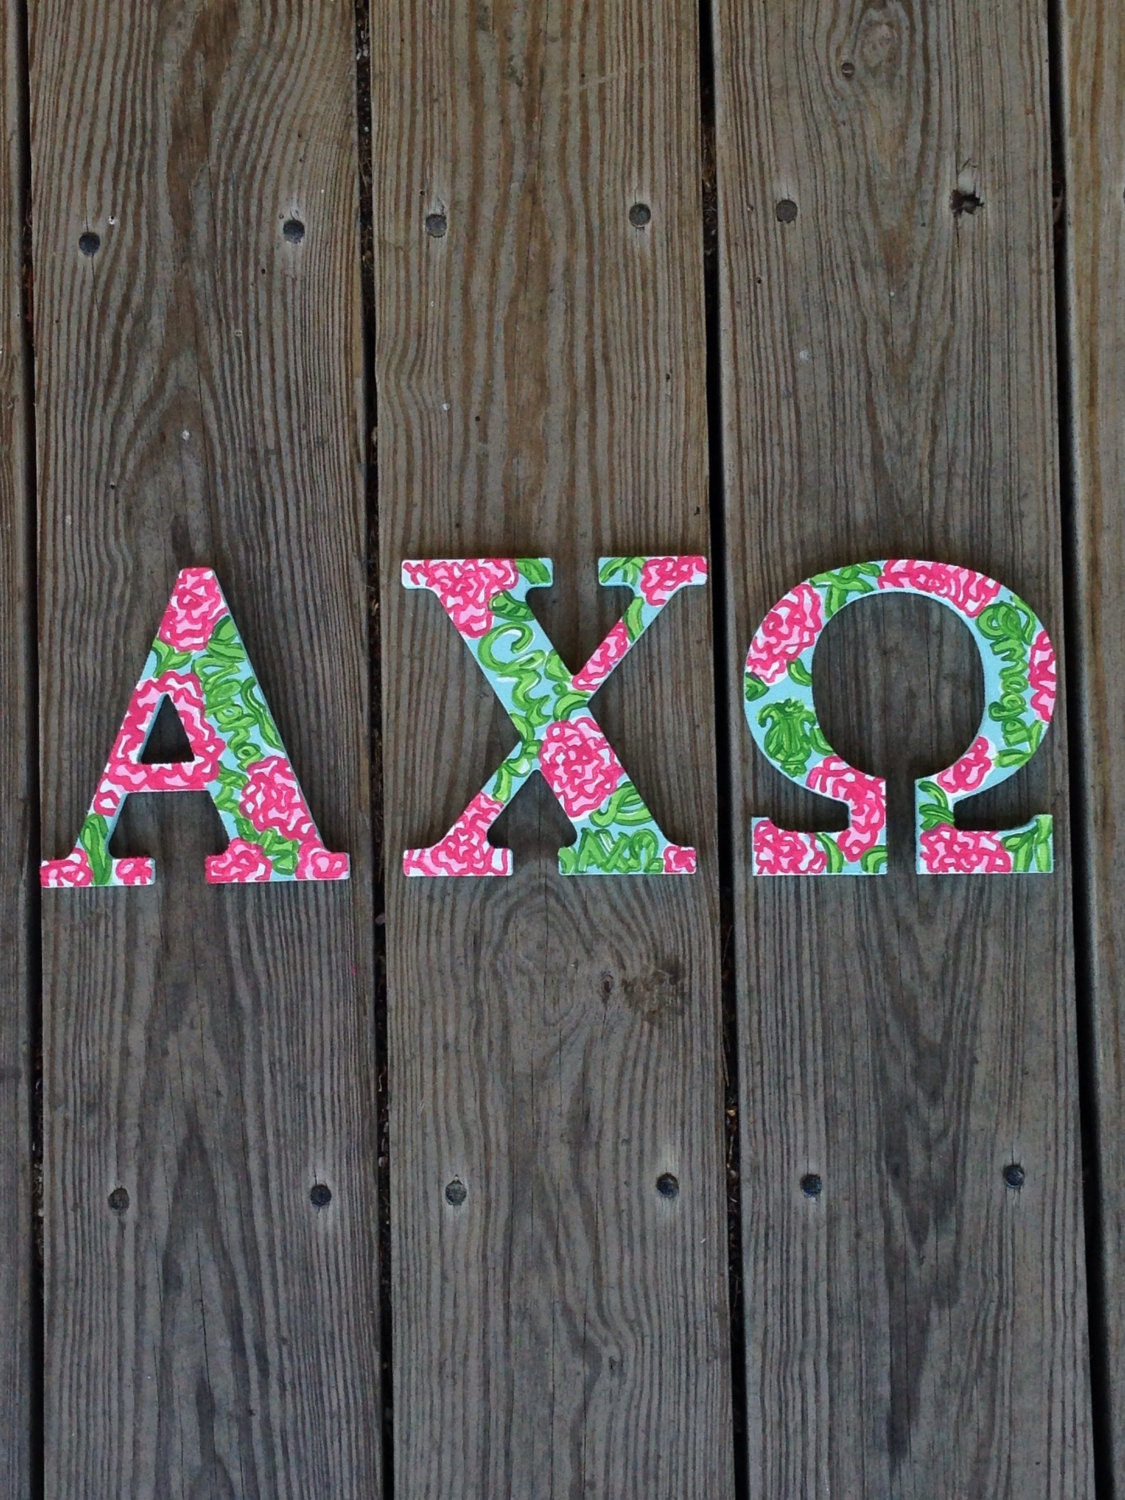 alpha chi omega lilly pulitzer inspired letters wooden sorority letters lilly letters sorority letters alpha chi lilly print